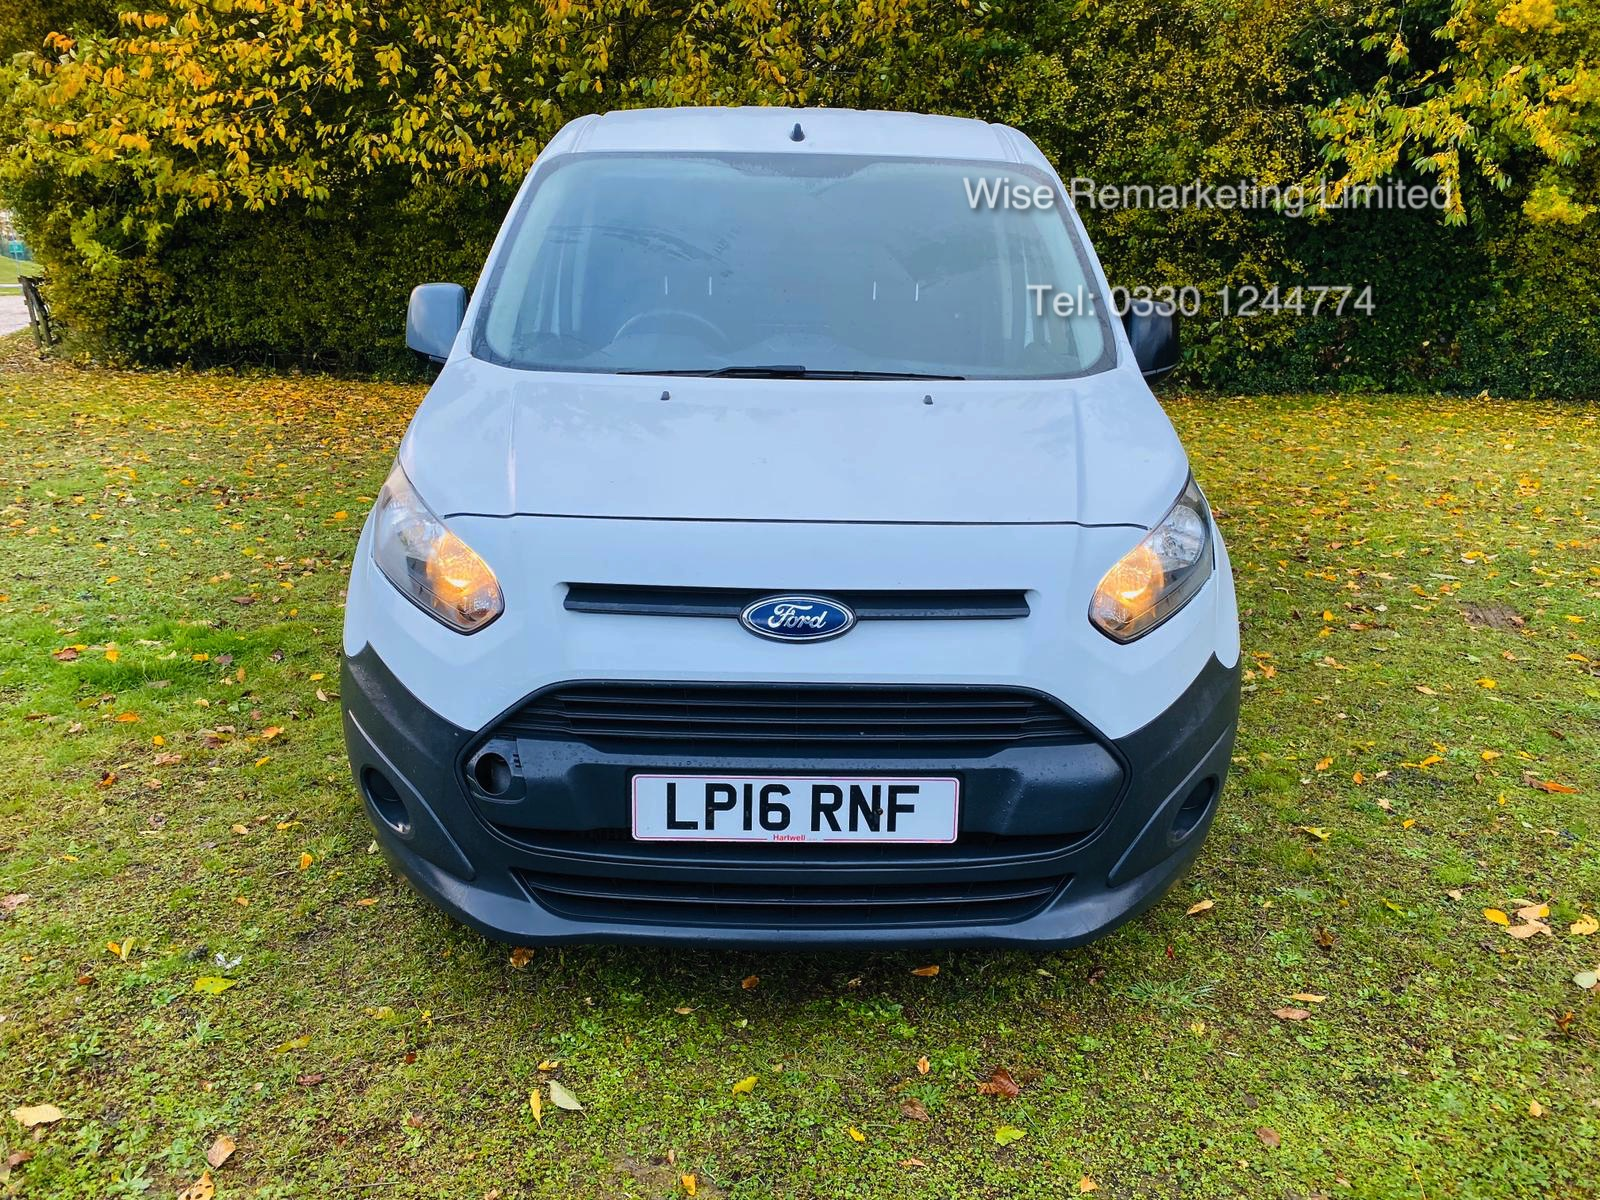 Ford Transit Connect 200 1.6 TDCI - 2016 16 Reg - 1 Keeper From New - Elec Pack -Bluetooth - Image 6 of 18